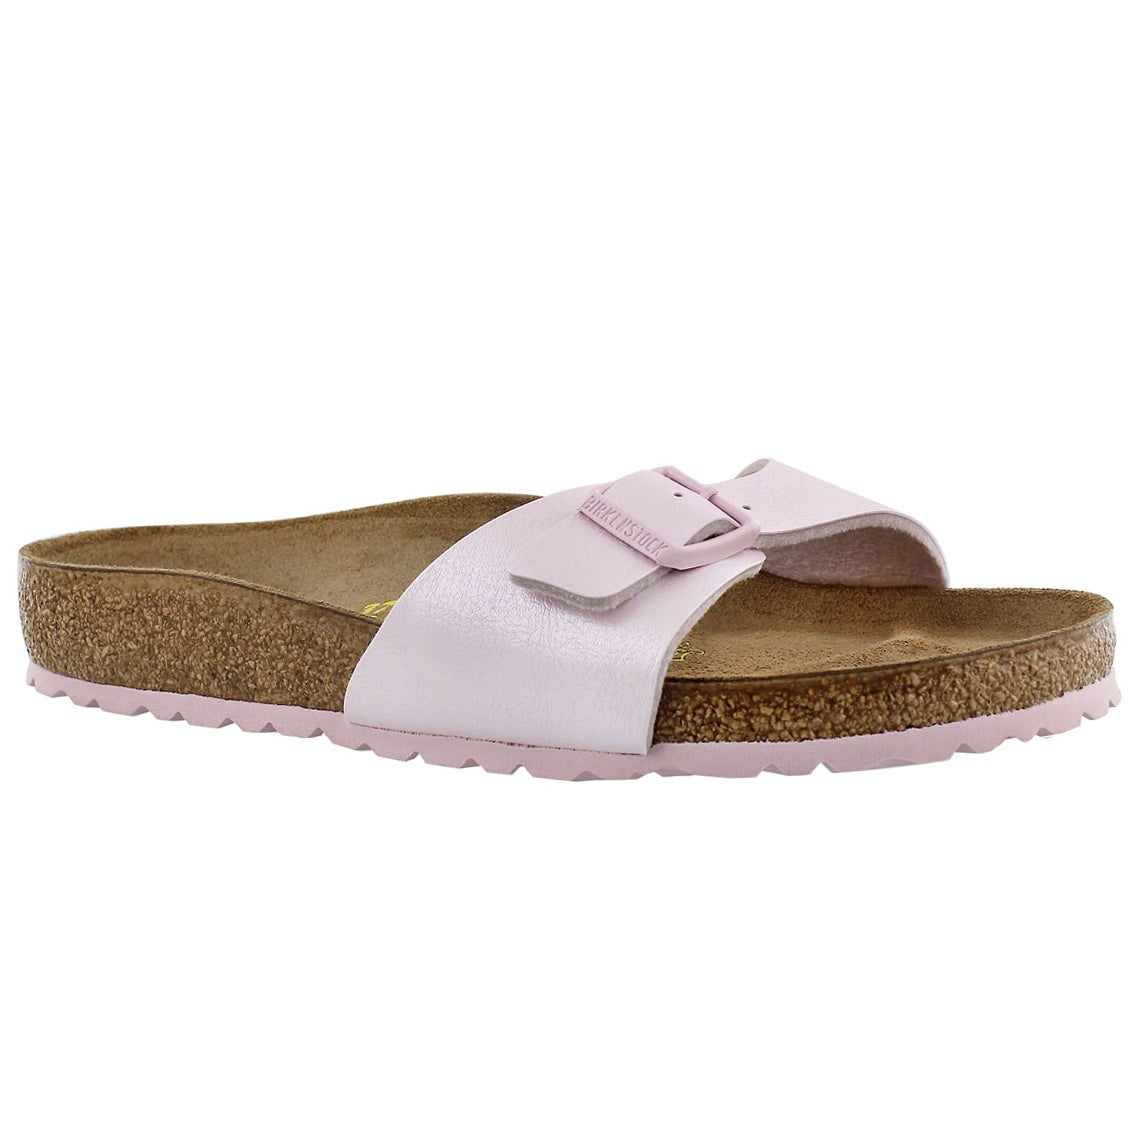 Lds Madrid graceful rose 1 strap sandal